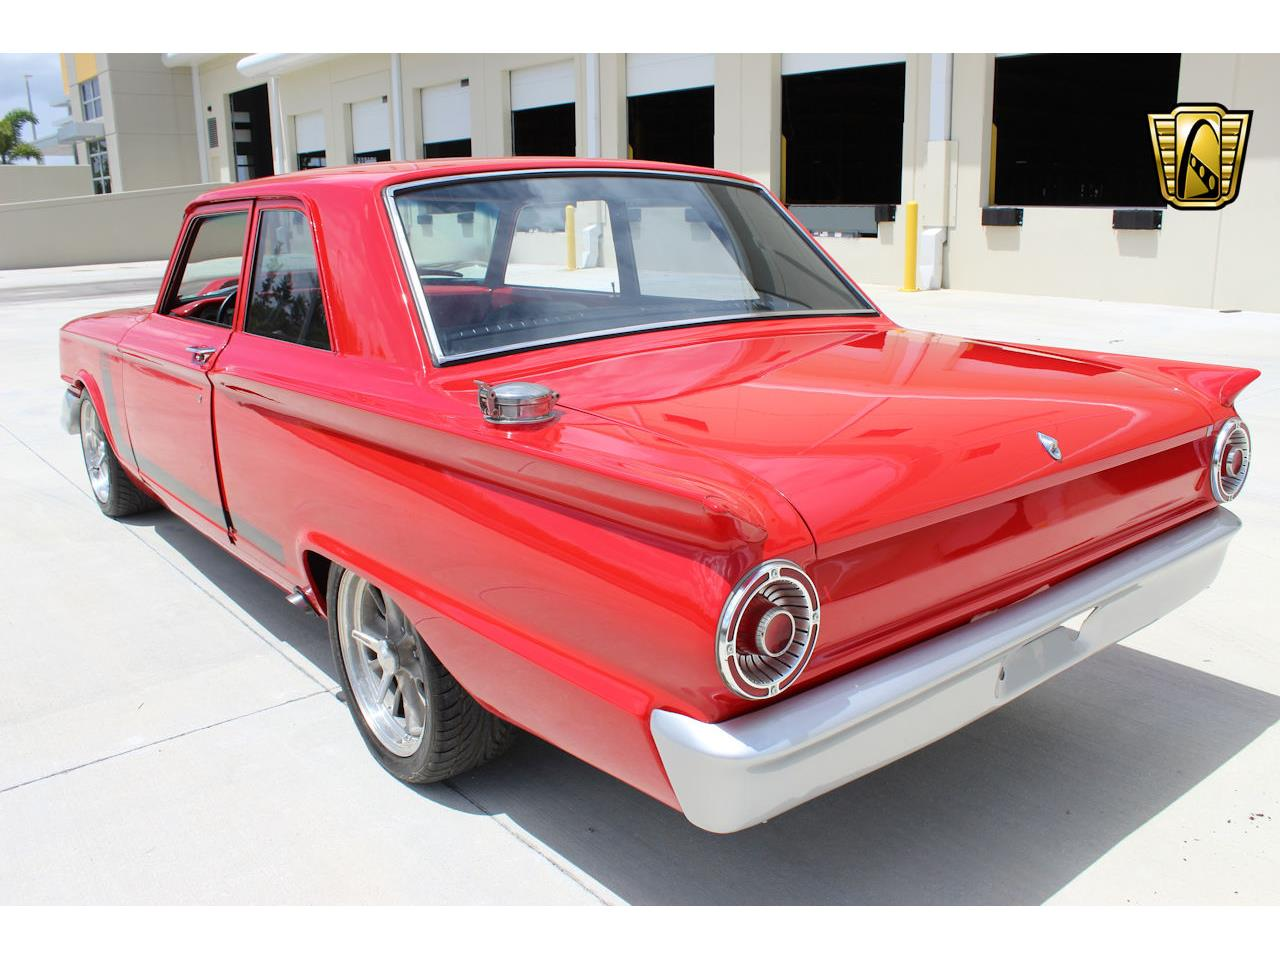 Large Picture of Classic '63 Ford Fairlane located in Coral Springs Florida - $27,595.00 - MSBB